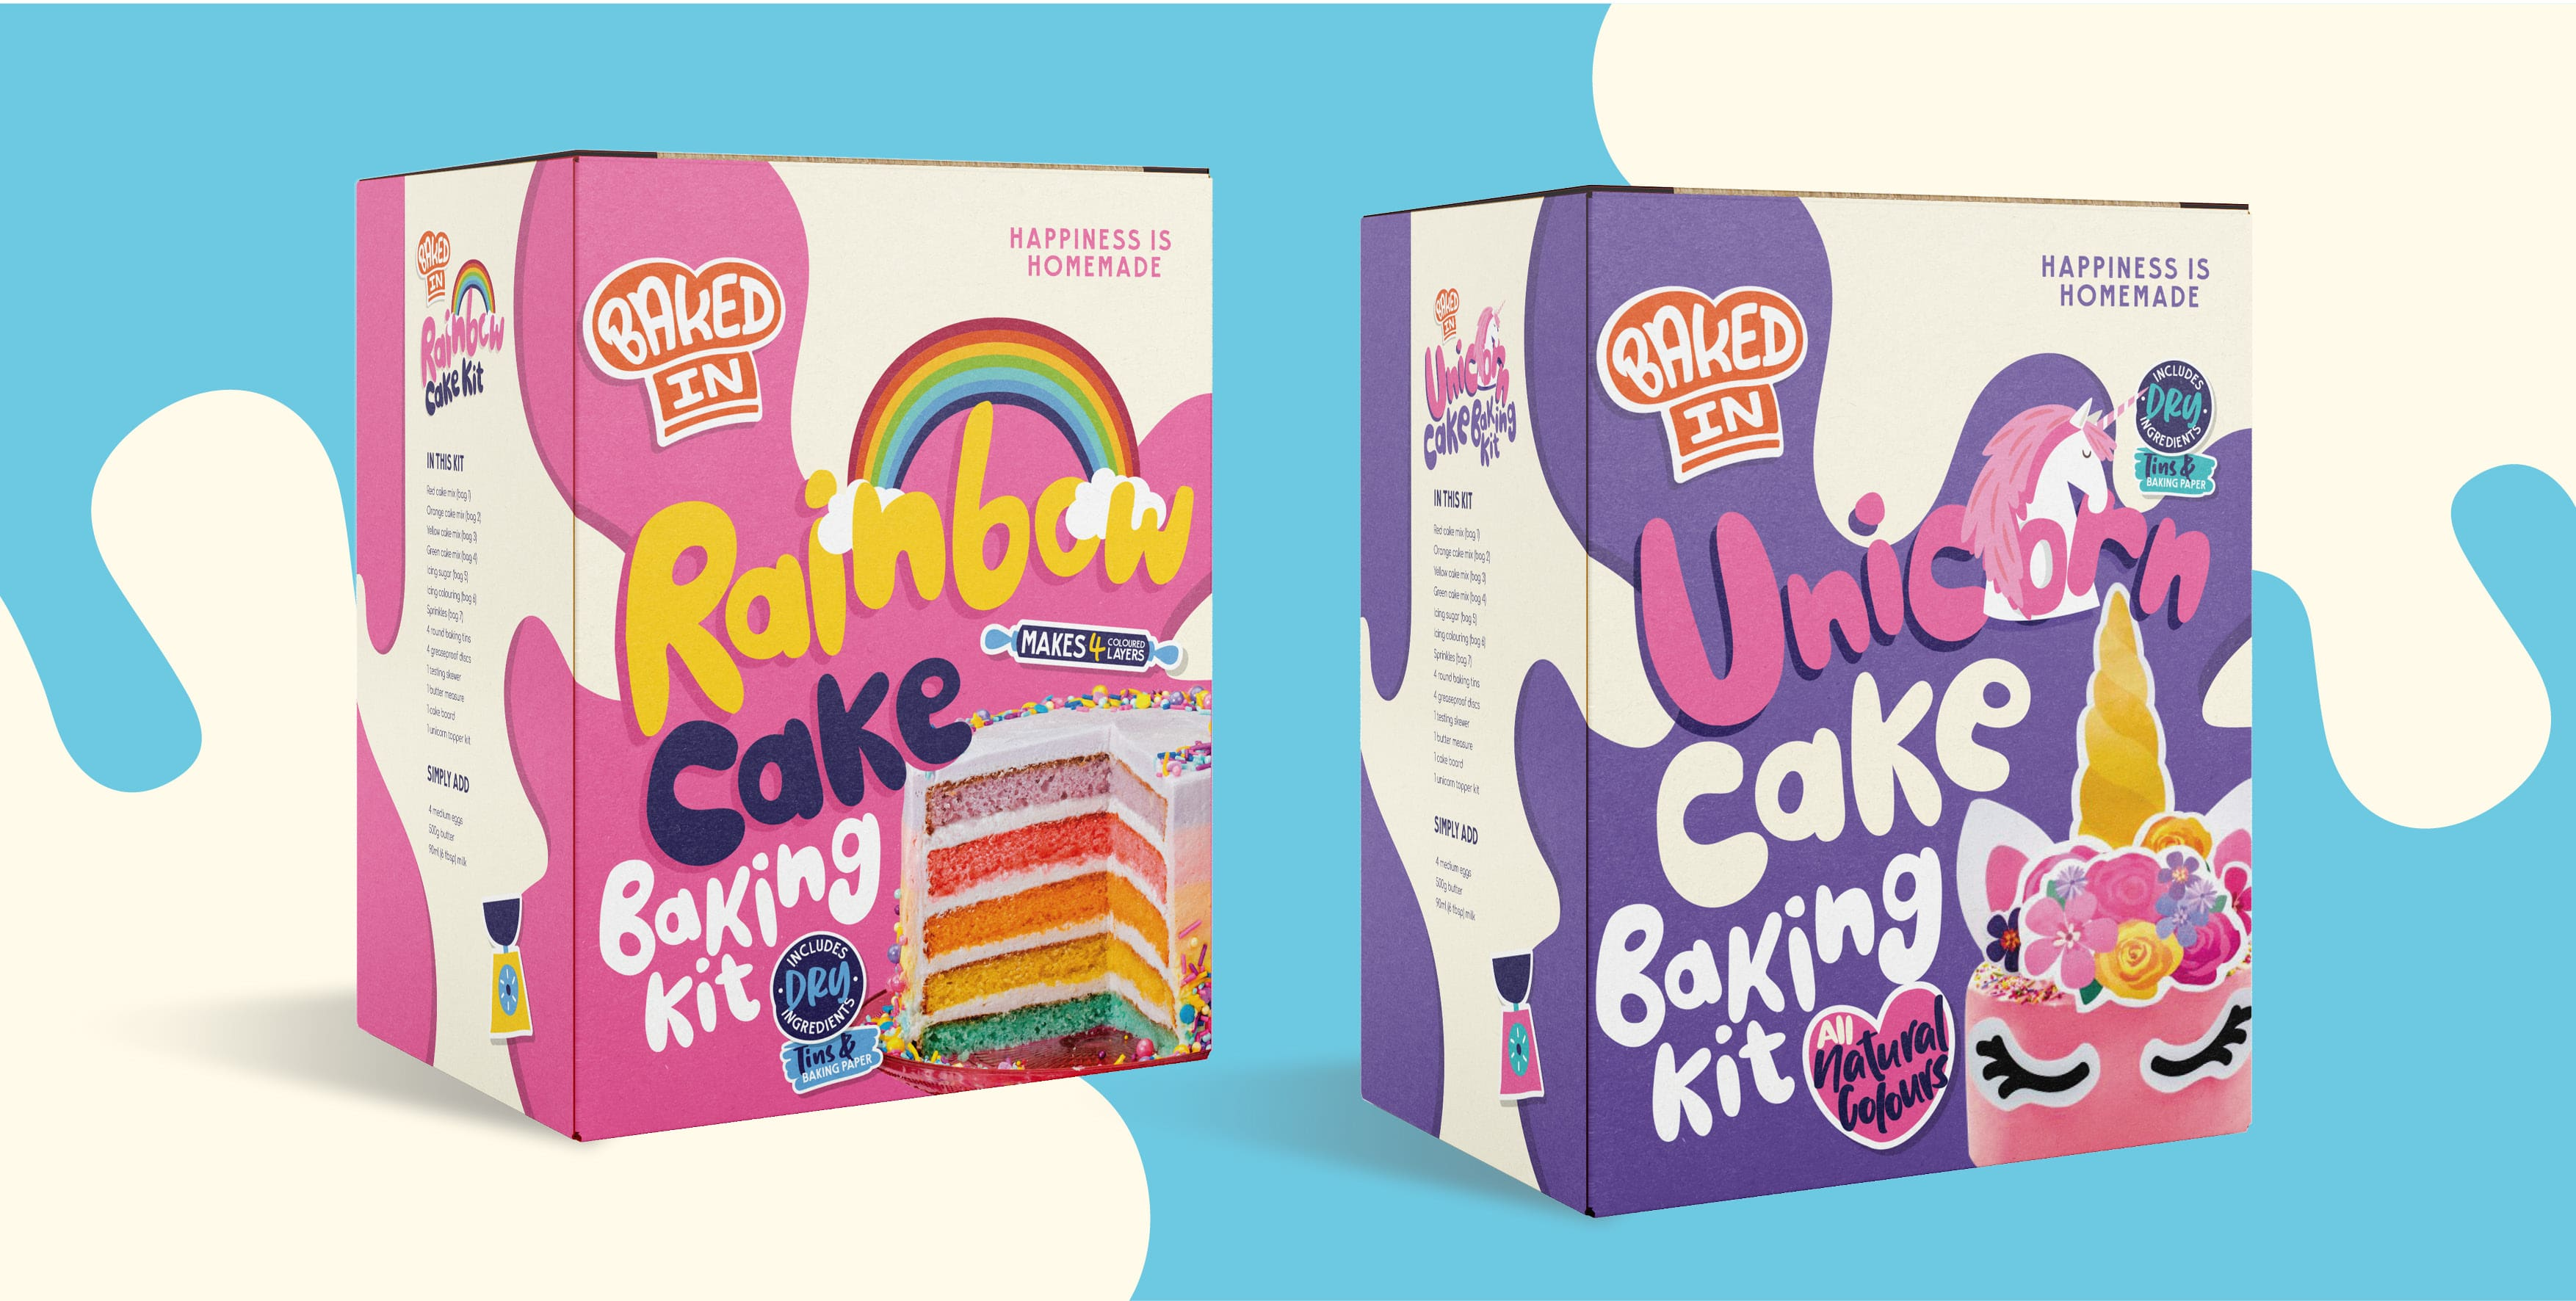 We Launch Create Playful New Brand Identity for Home Baking Subscription Service Baked In